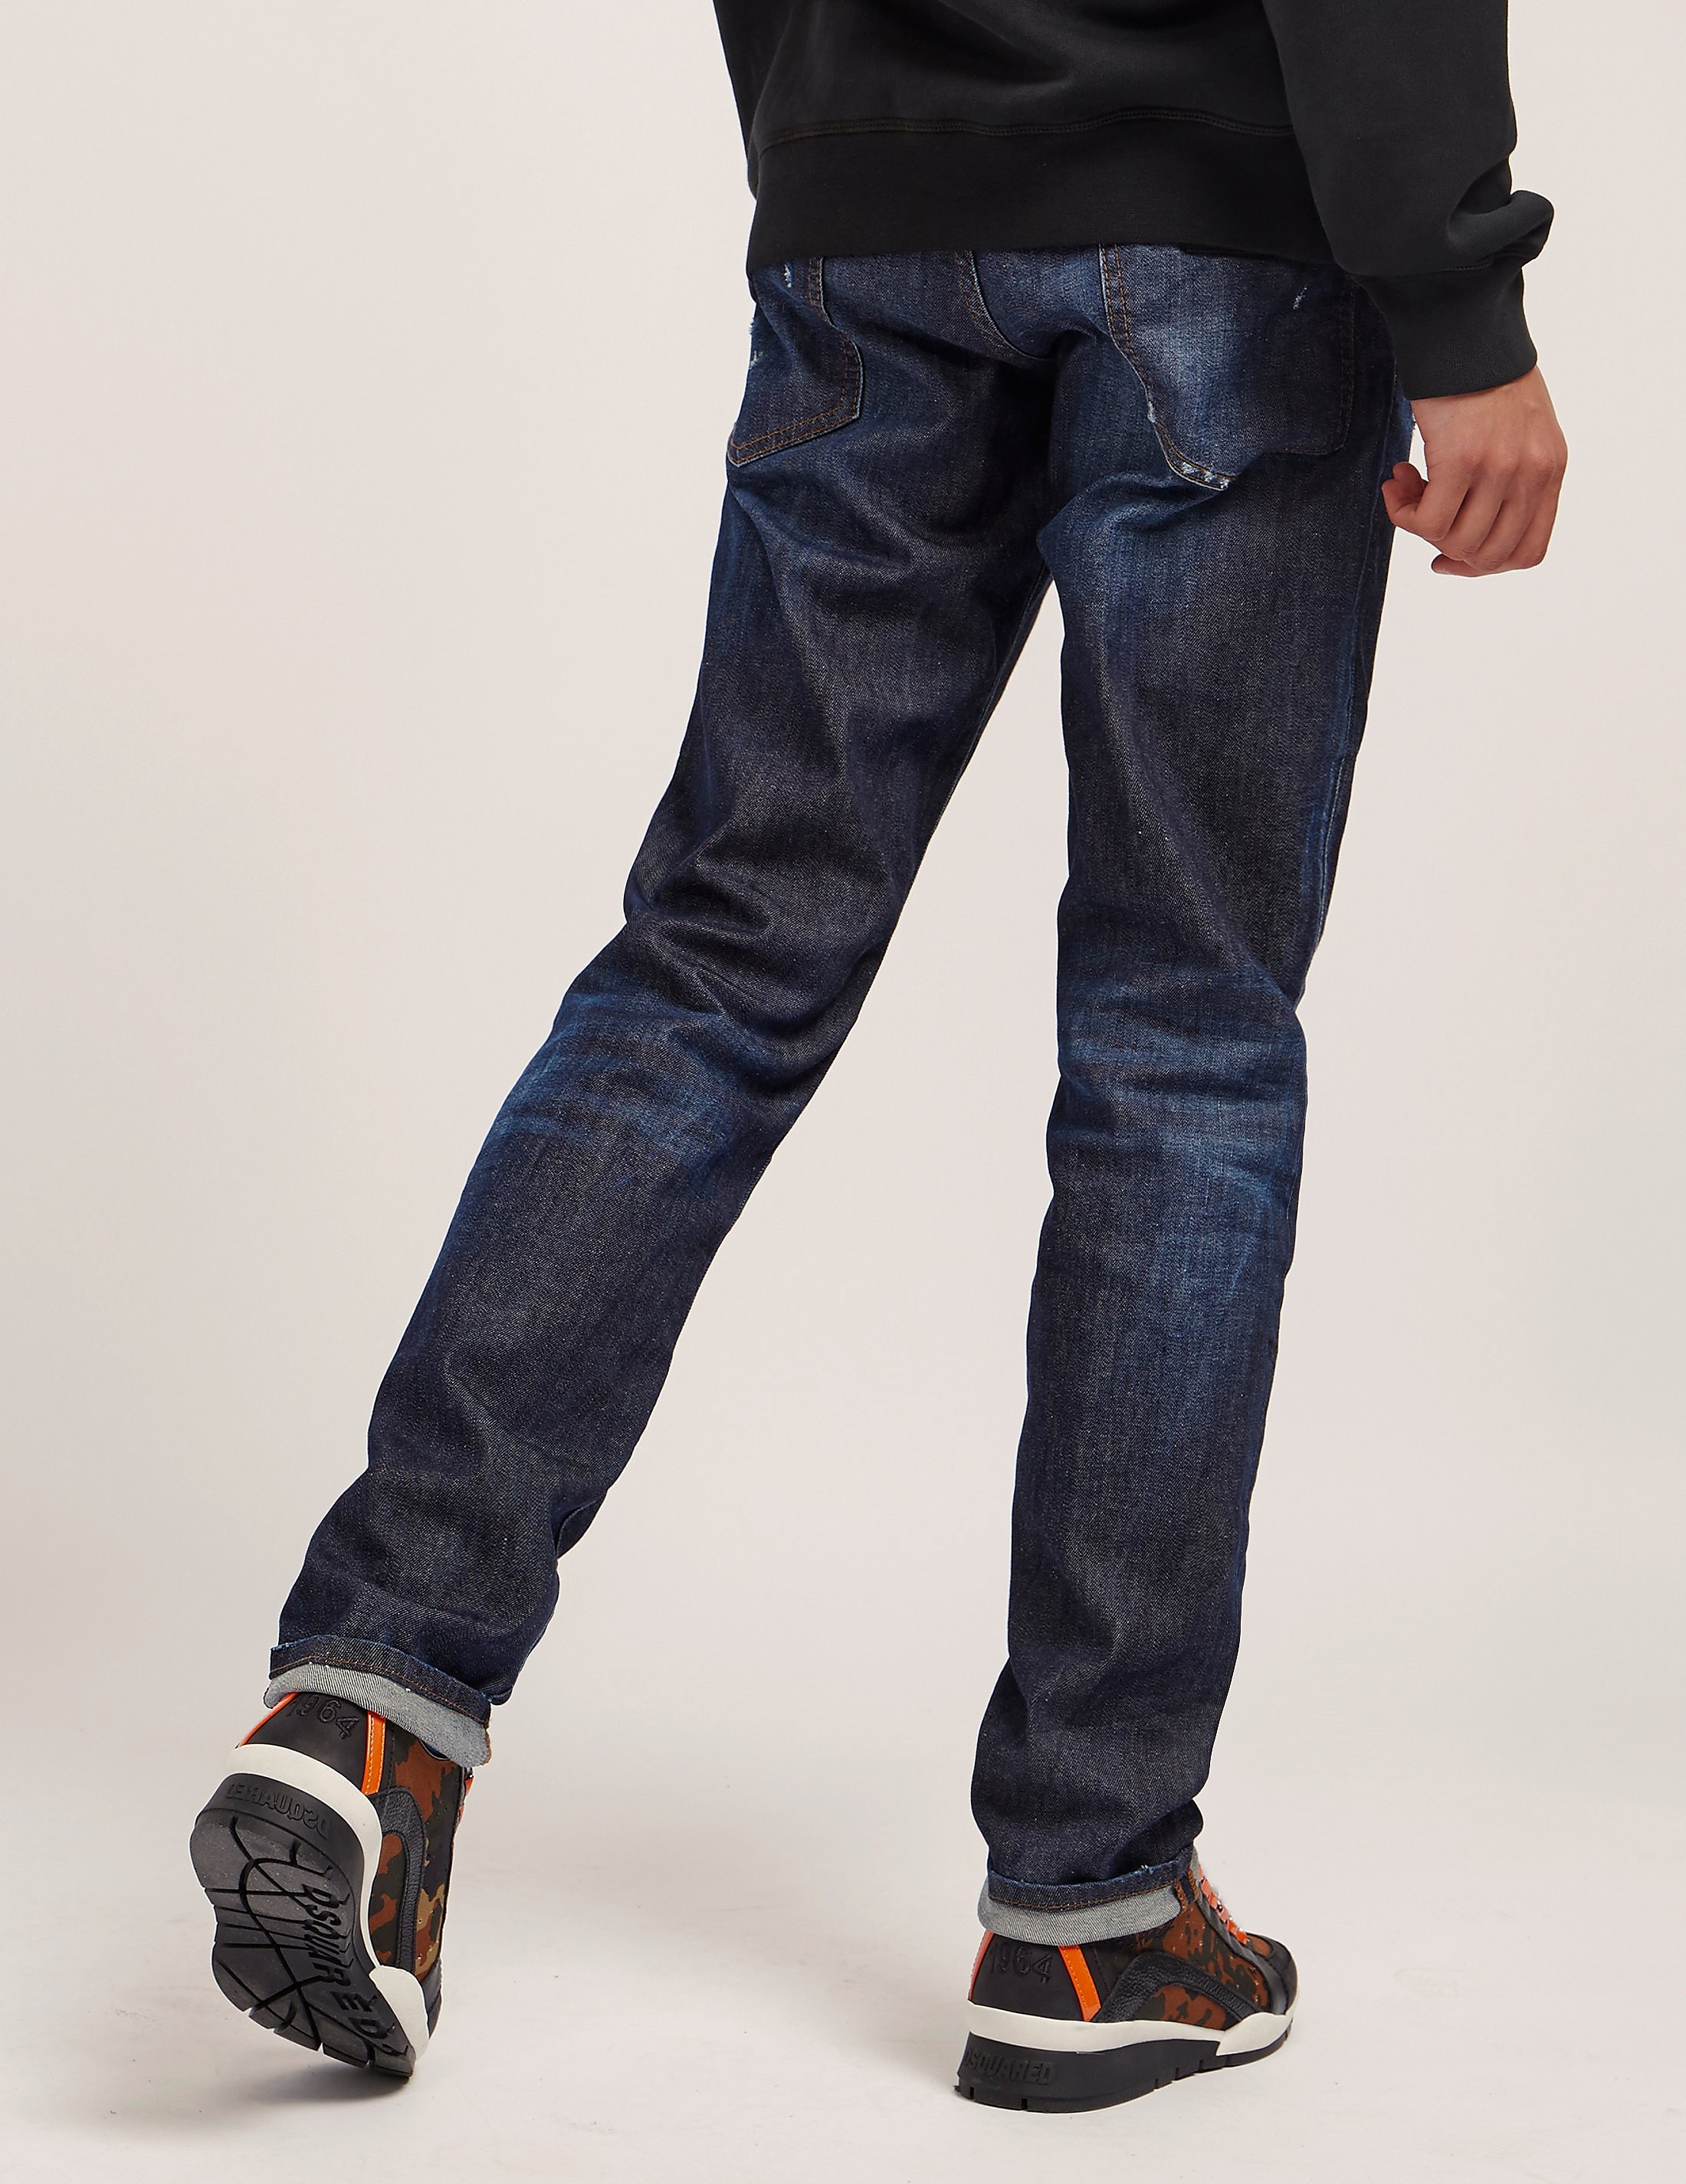 DSQUARED2 Plaque Slim Jeans